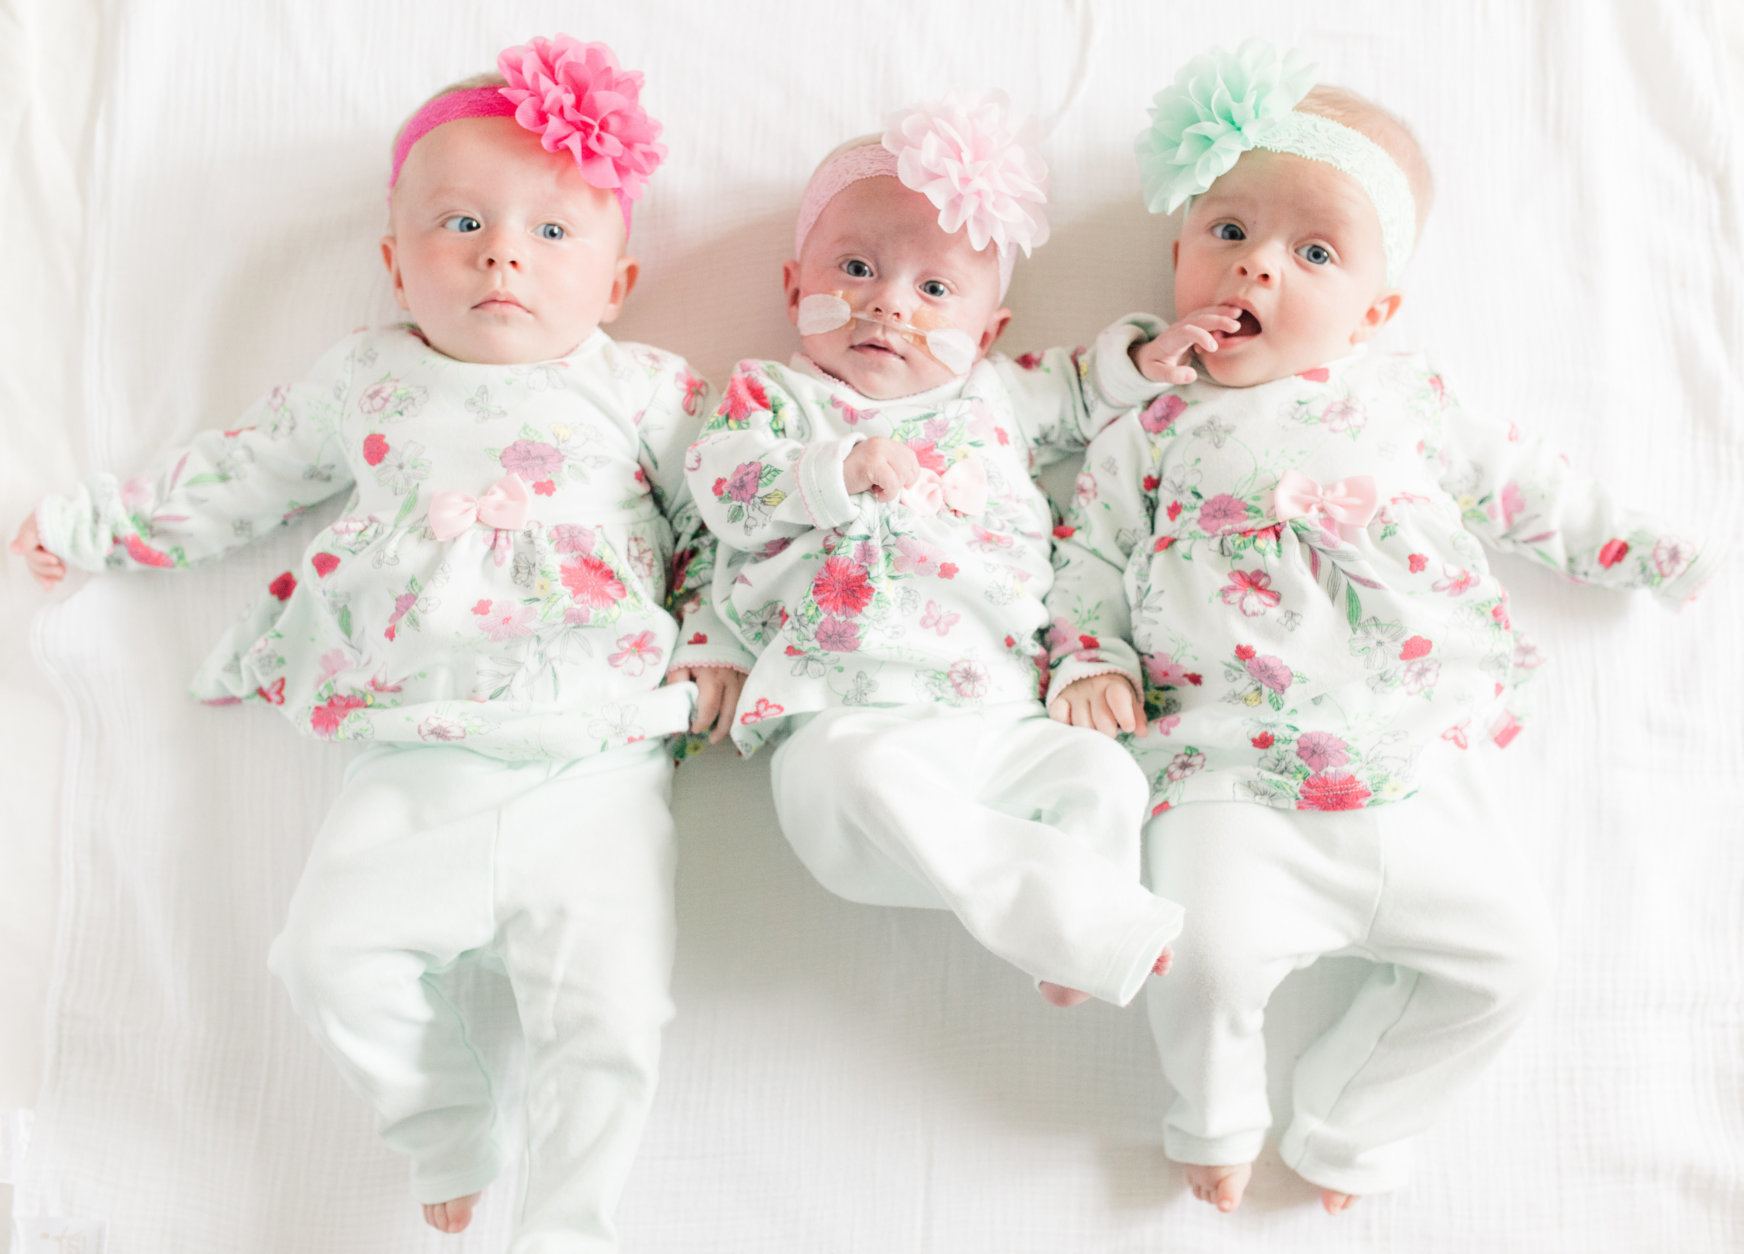 Pictured in May 2018, Rose in dark pink, Julia in light pink and Elise in green. (Courtesy Abigail Rueger)